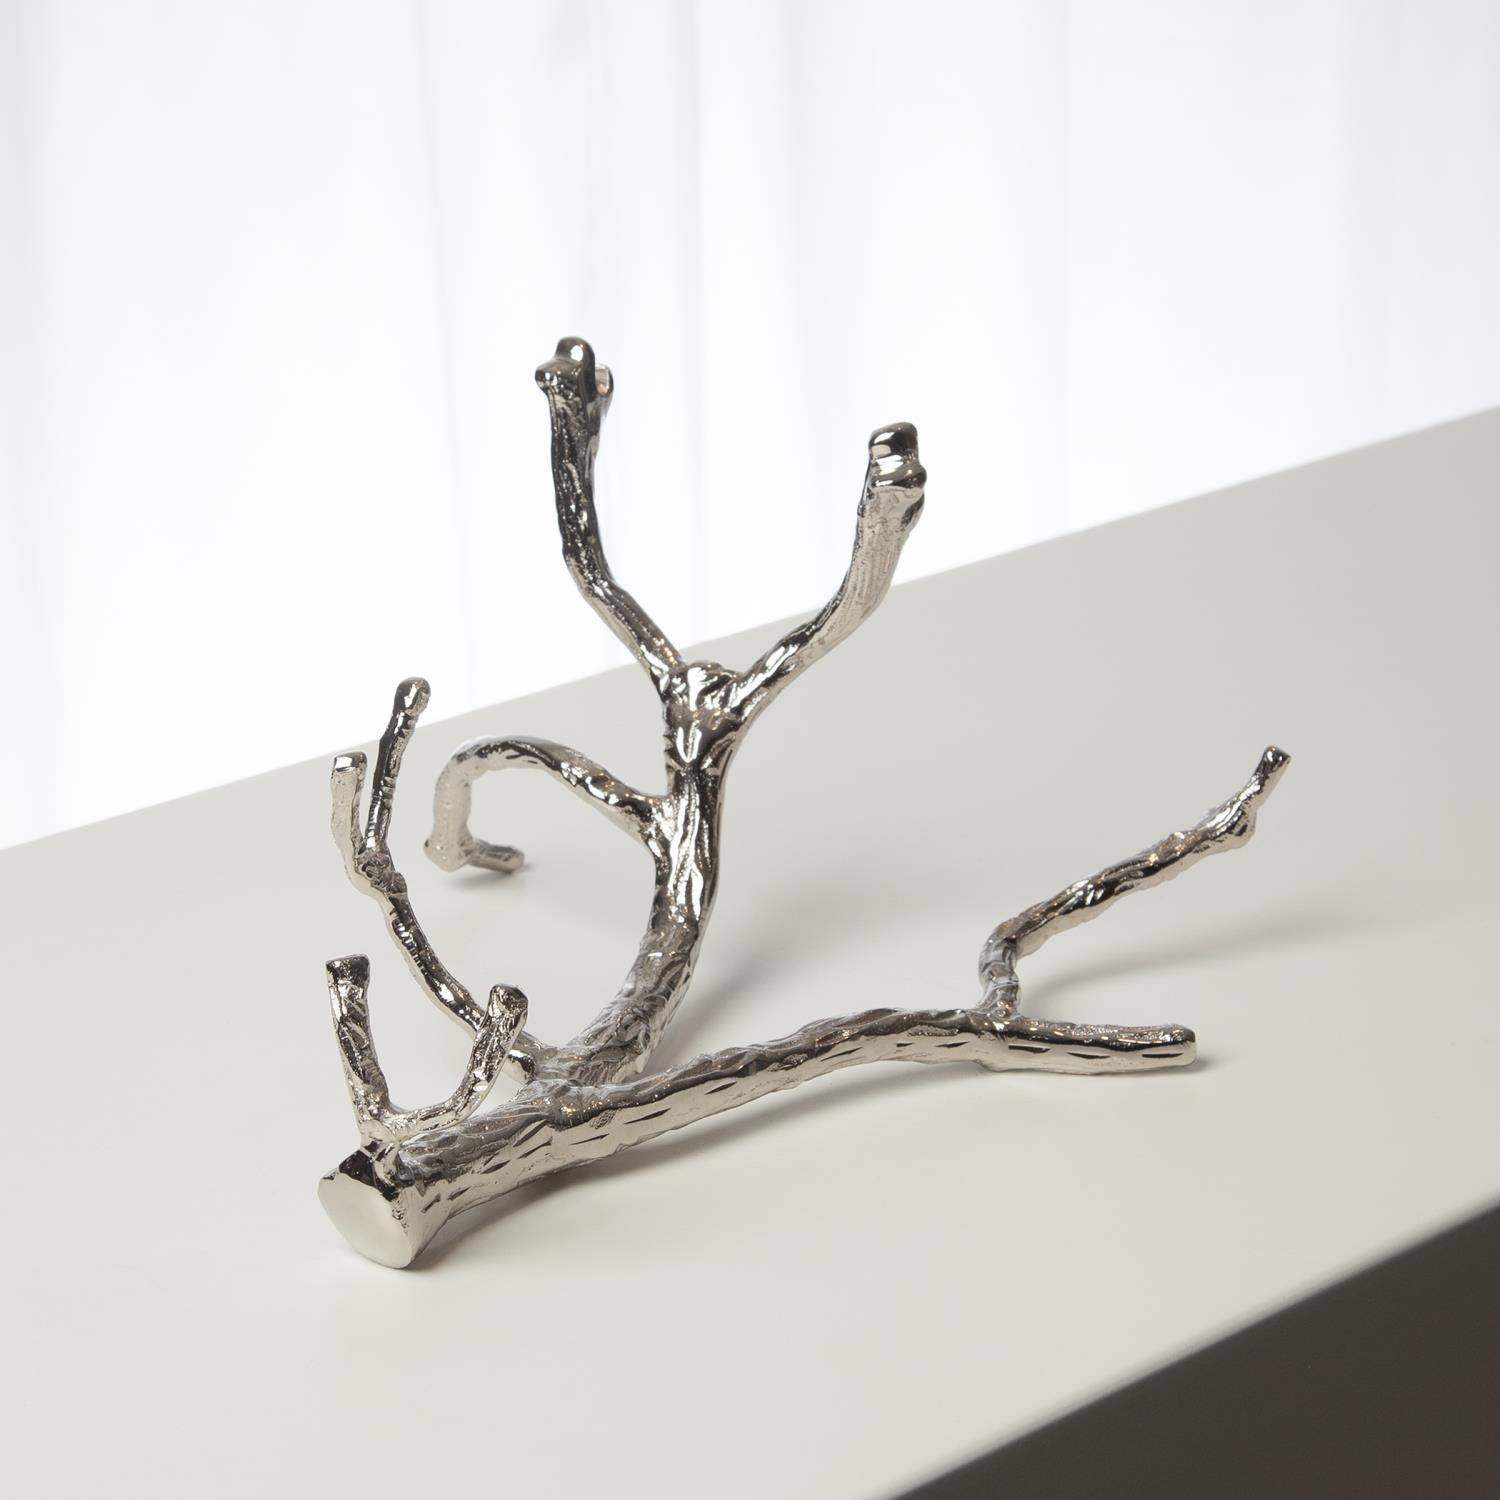 Twig Bottle holder - Benzie Gifts